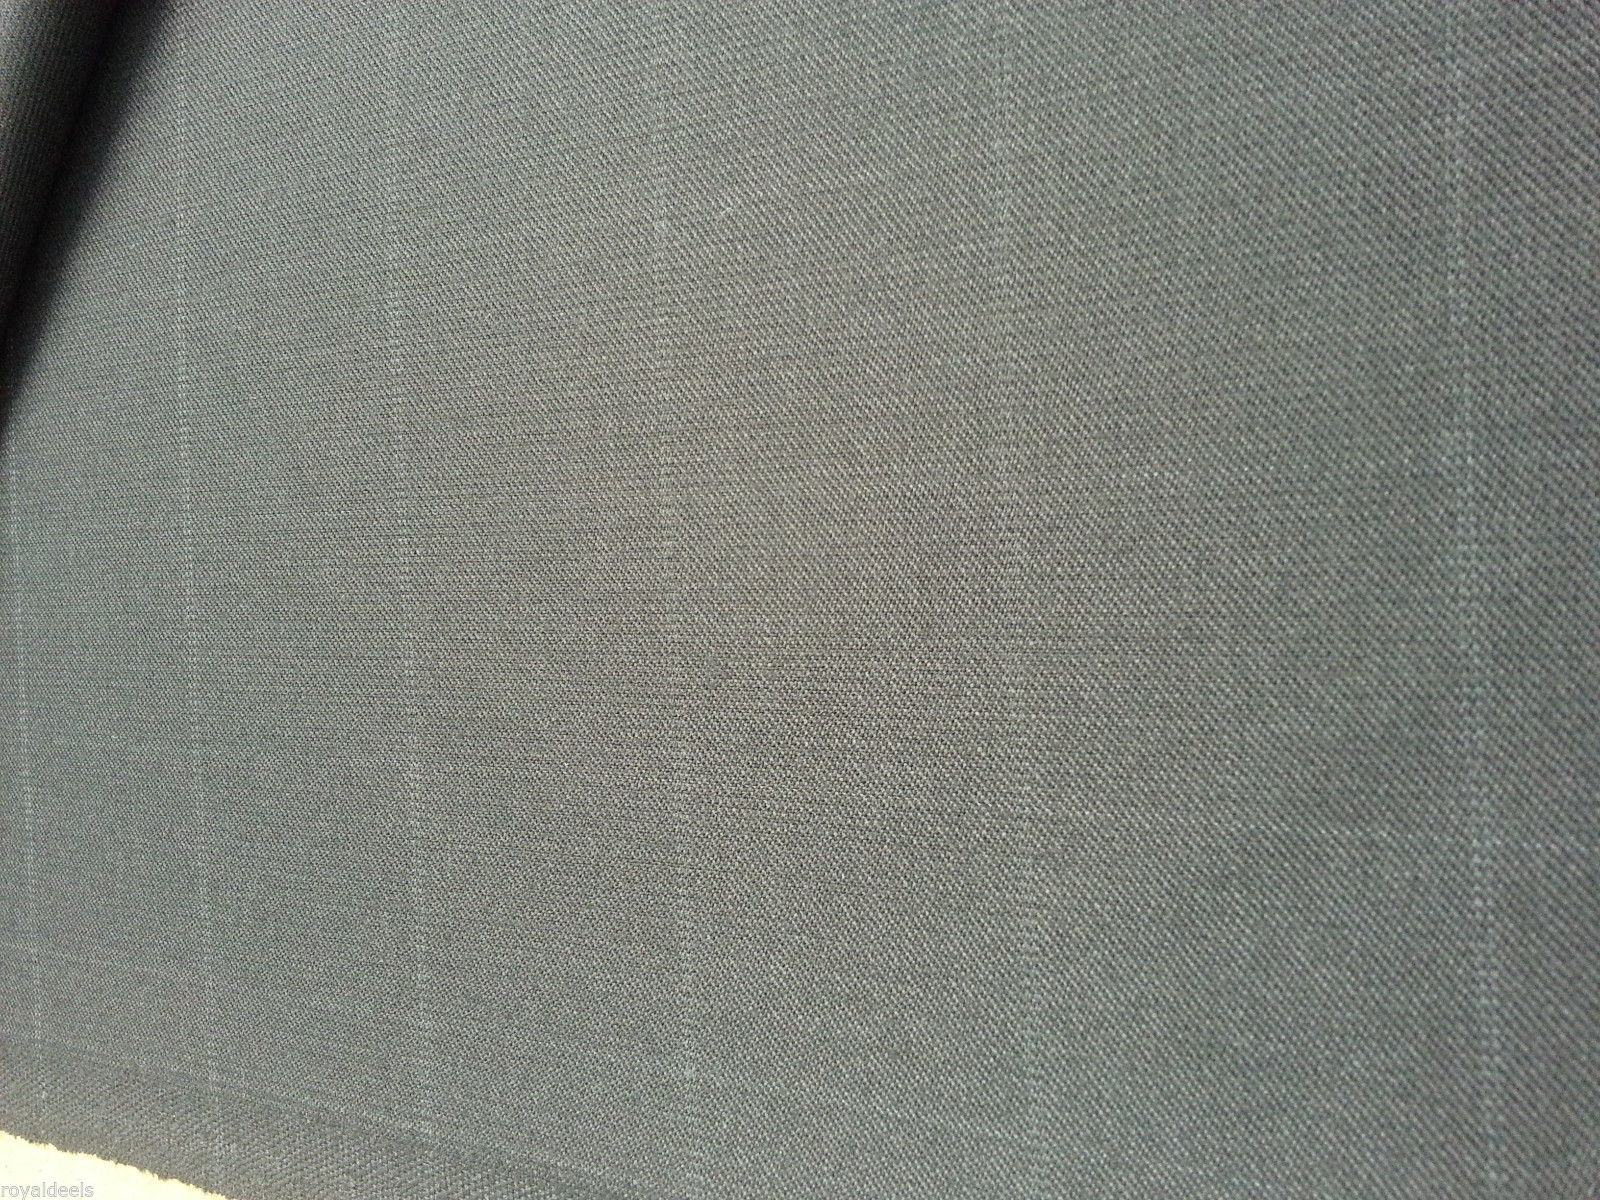 Super 130'S Italian Wool Checked Fine Suiting fabric  4.2 Yard- MSRP $745